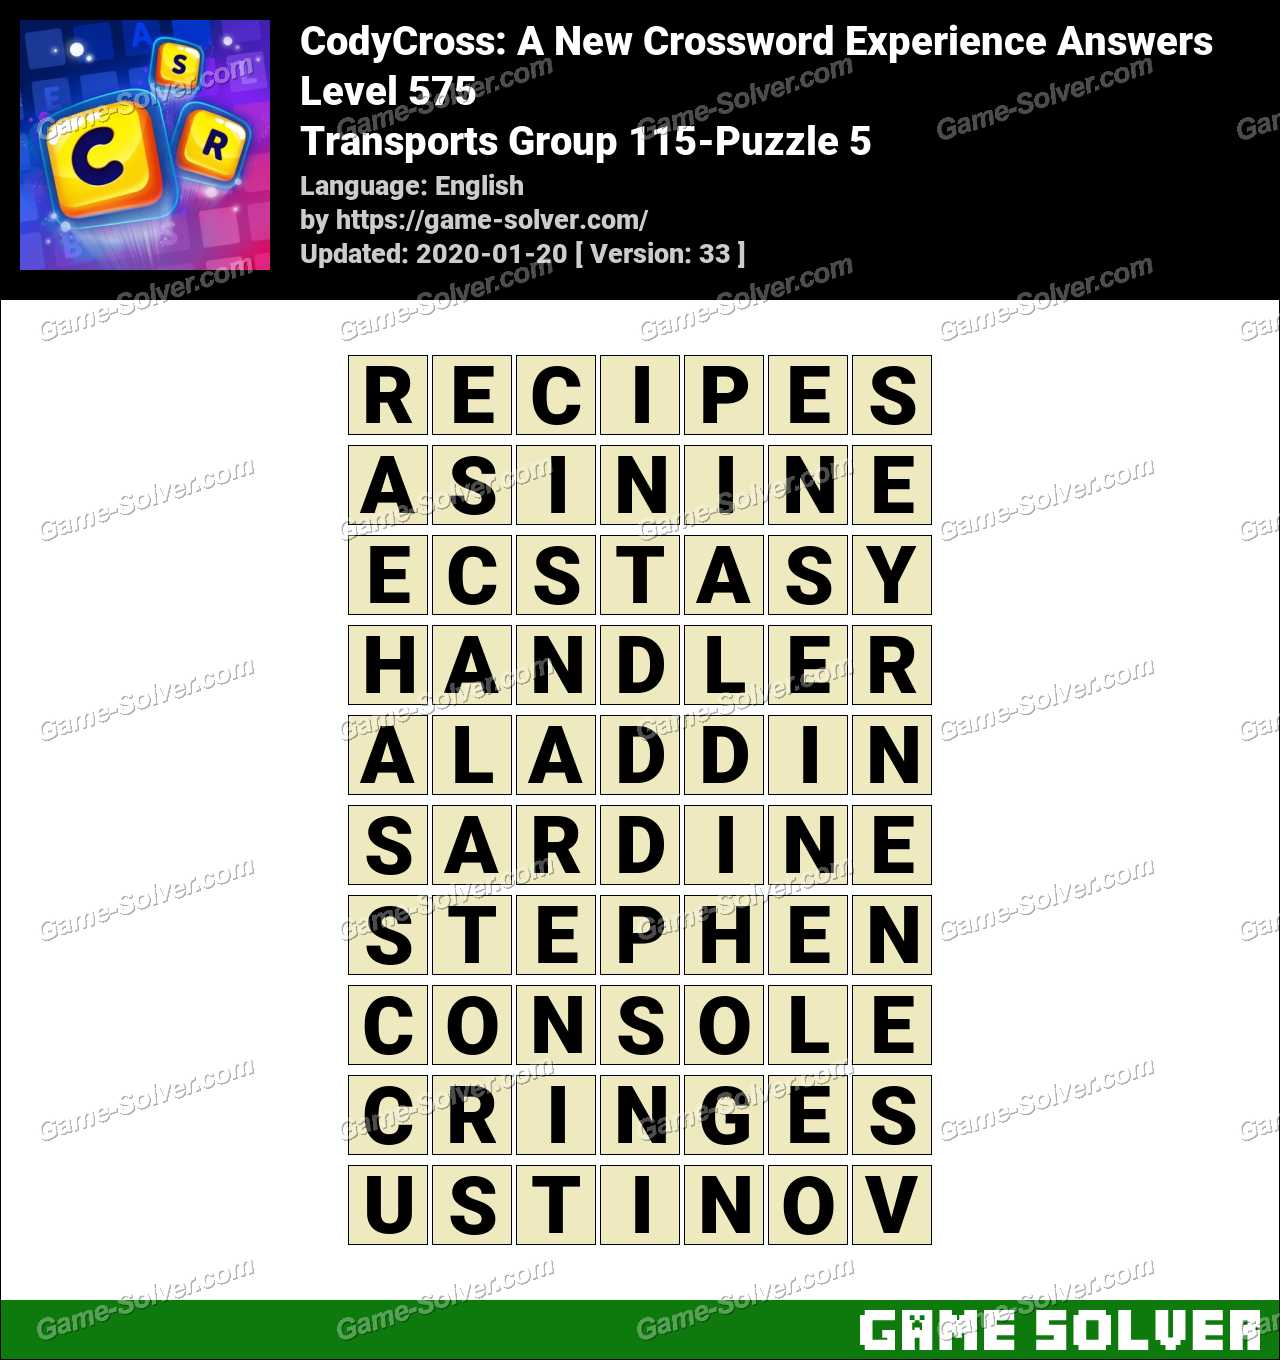 CodyCross Transports Group 115-Puzzle 5 Answers